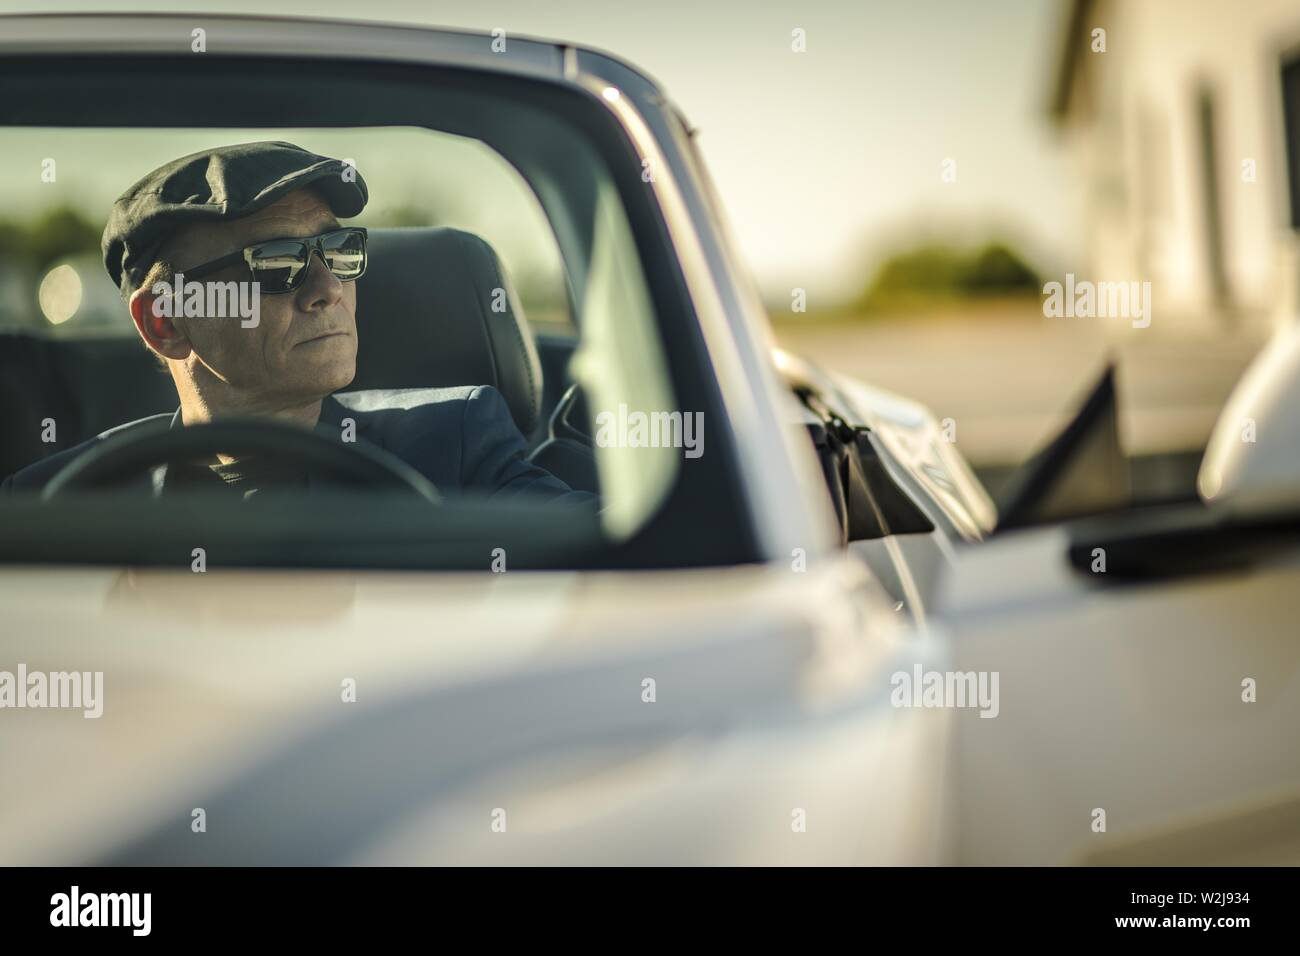 Attractive Elegant Caucasian Men in His 60s Inside Sporty Convertible Car. Midlife Crisis Conceptual Photo. Stock Photo